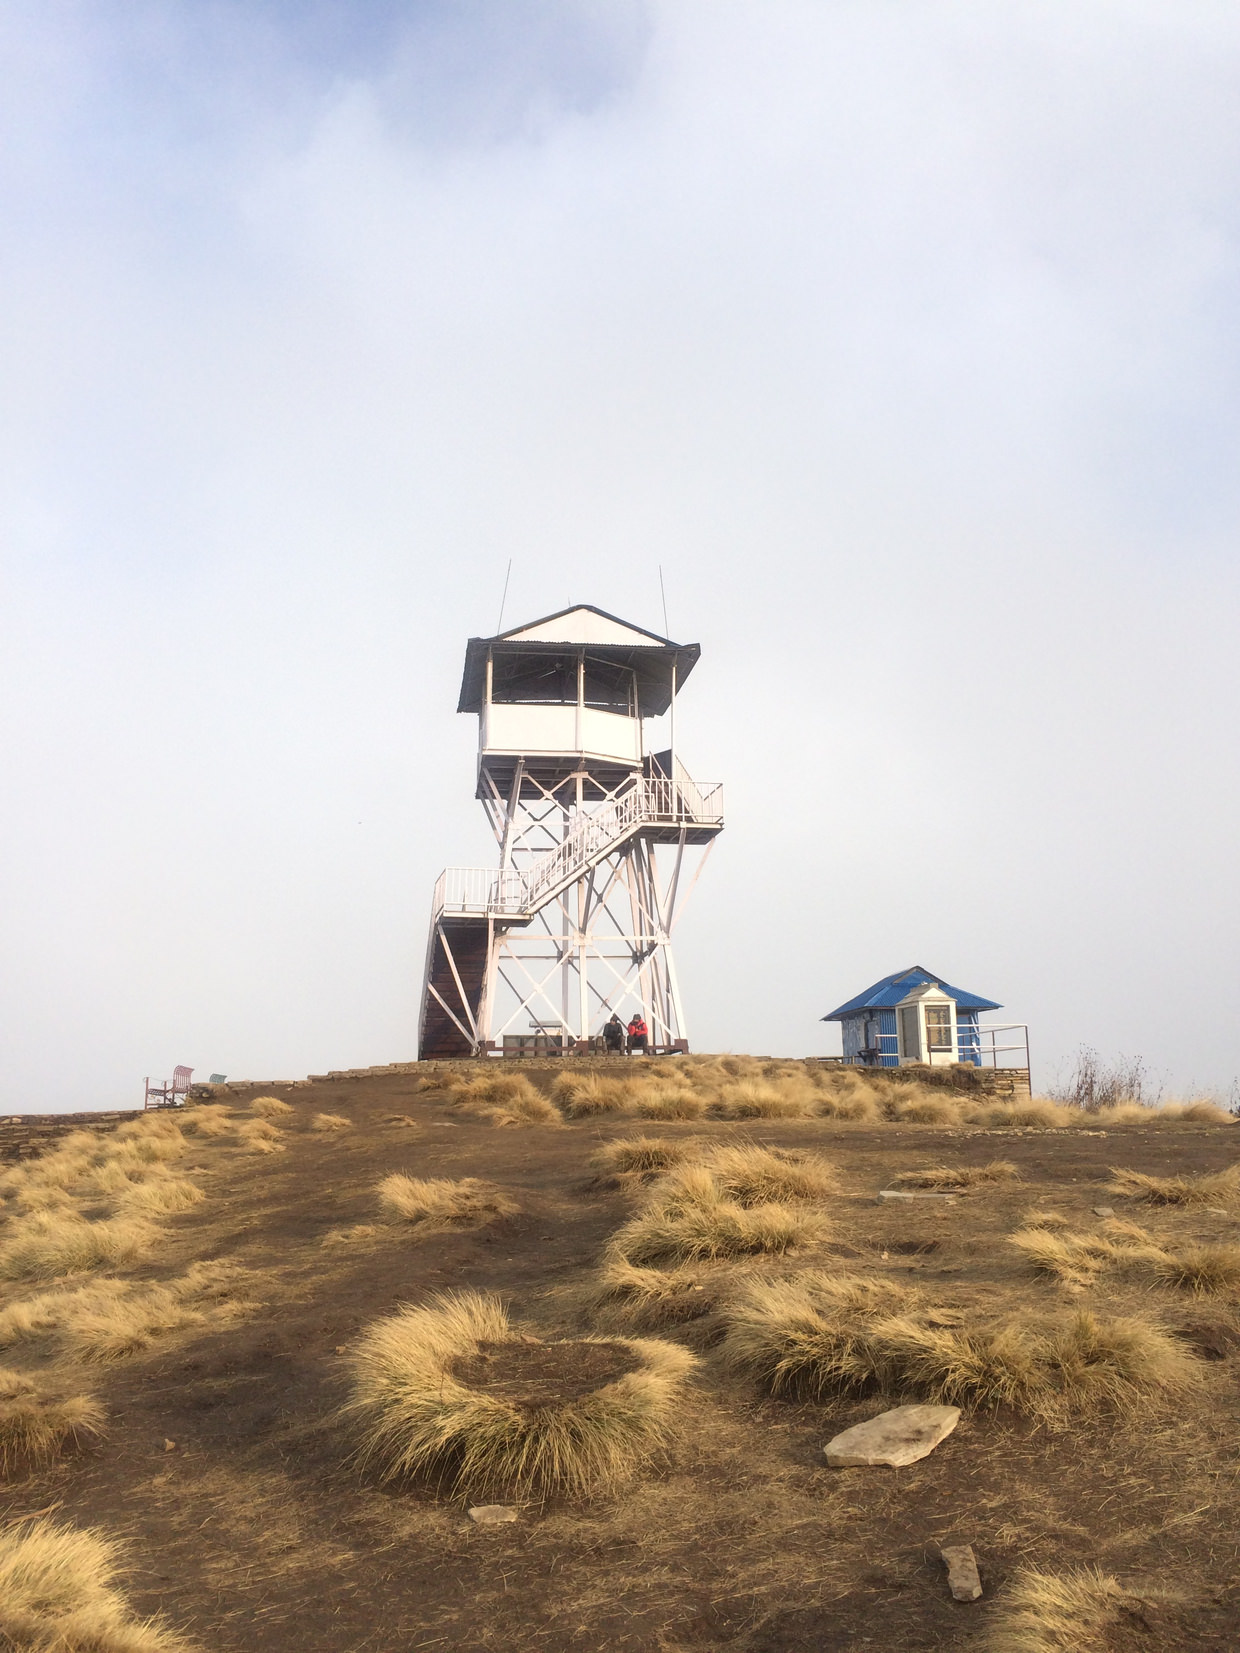 Poon Hill viewing tower and a slither of blue sky